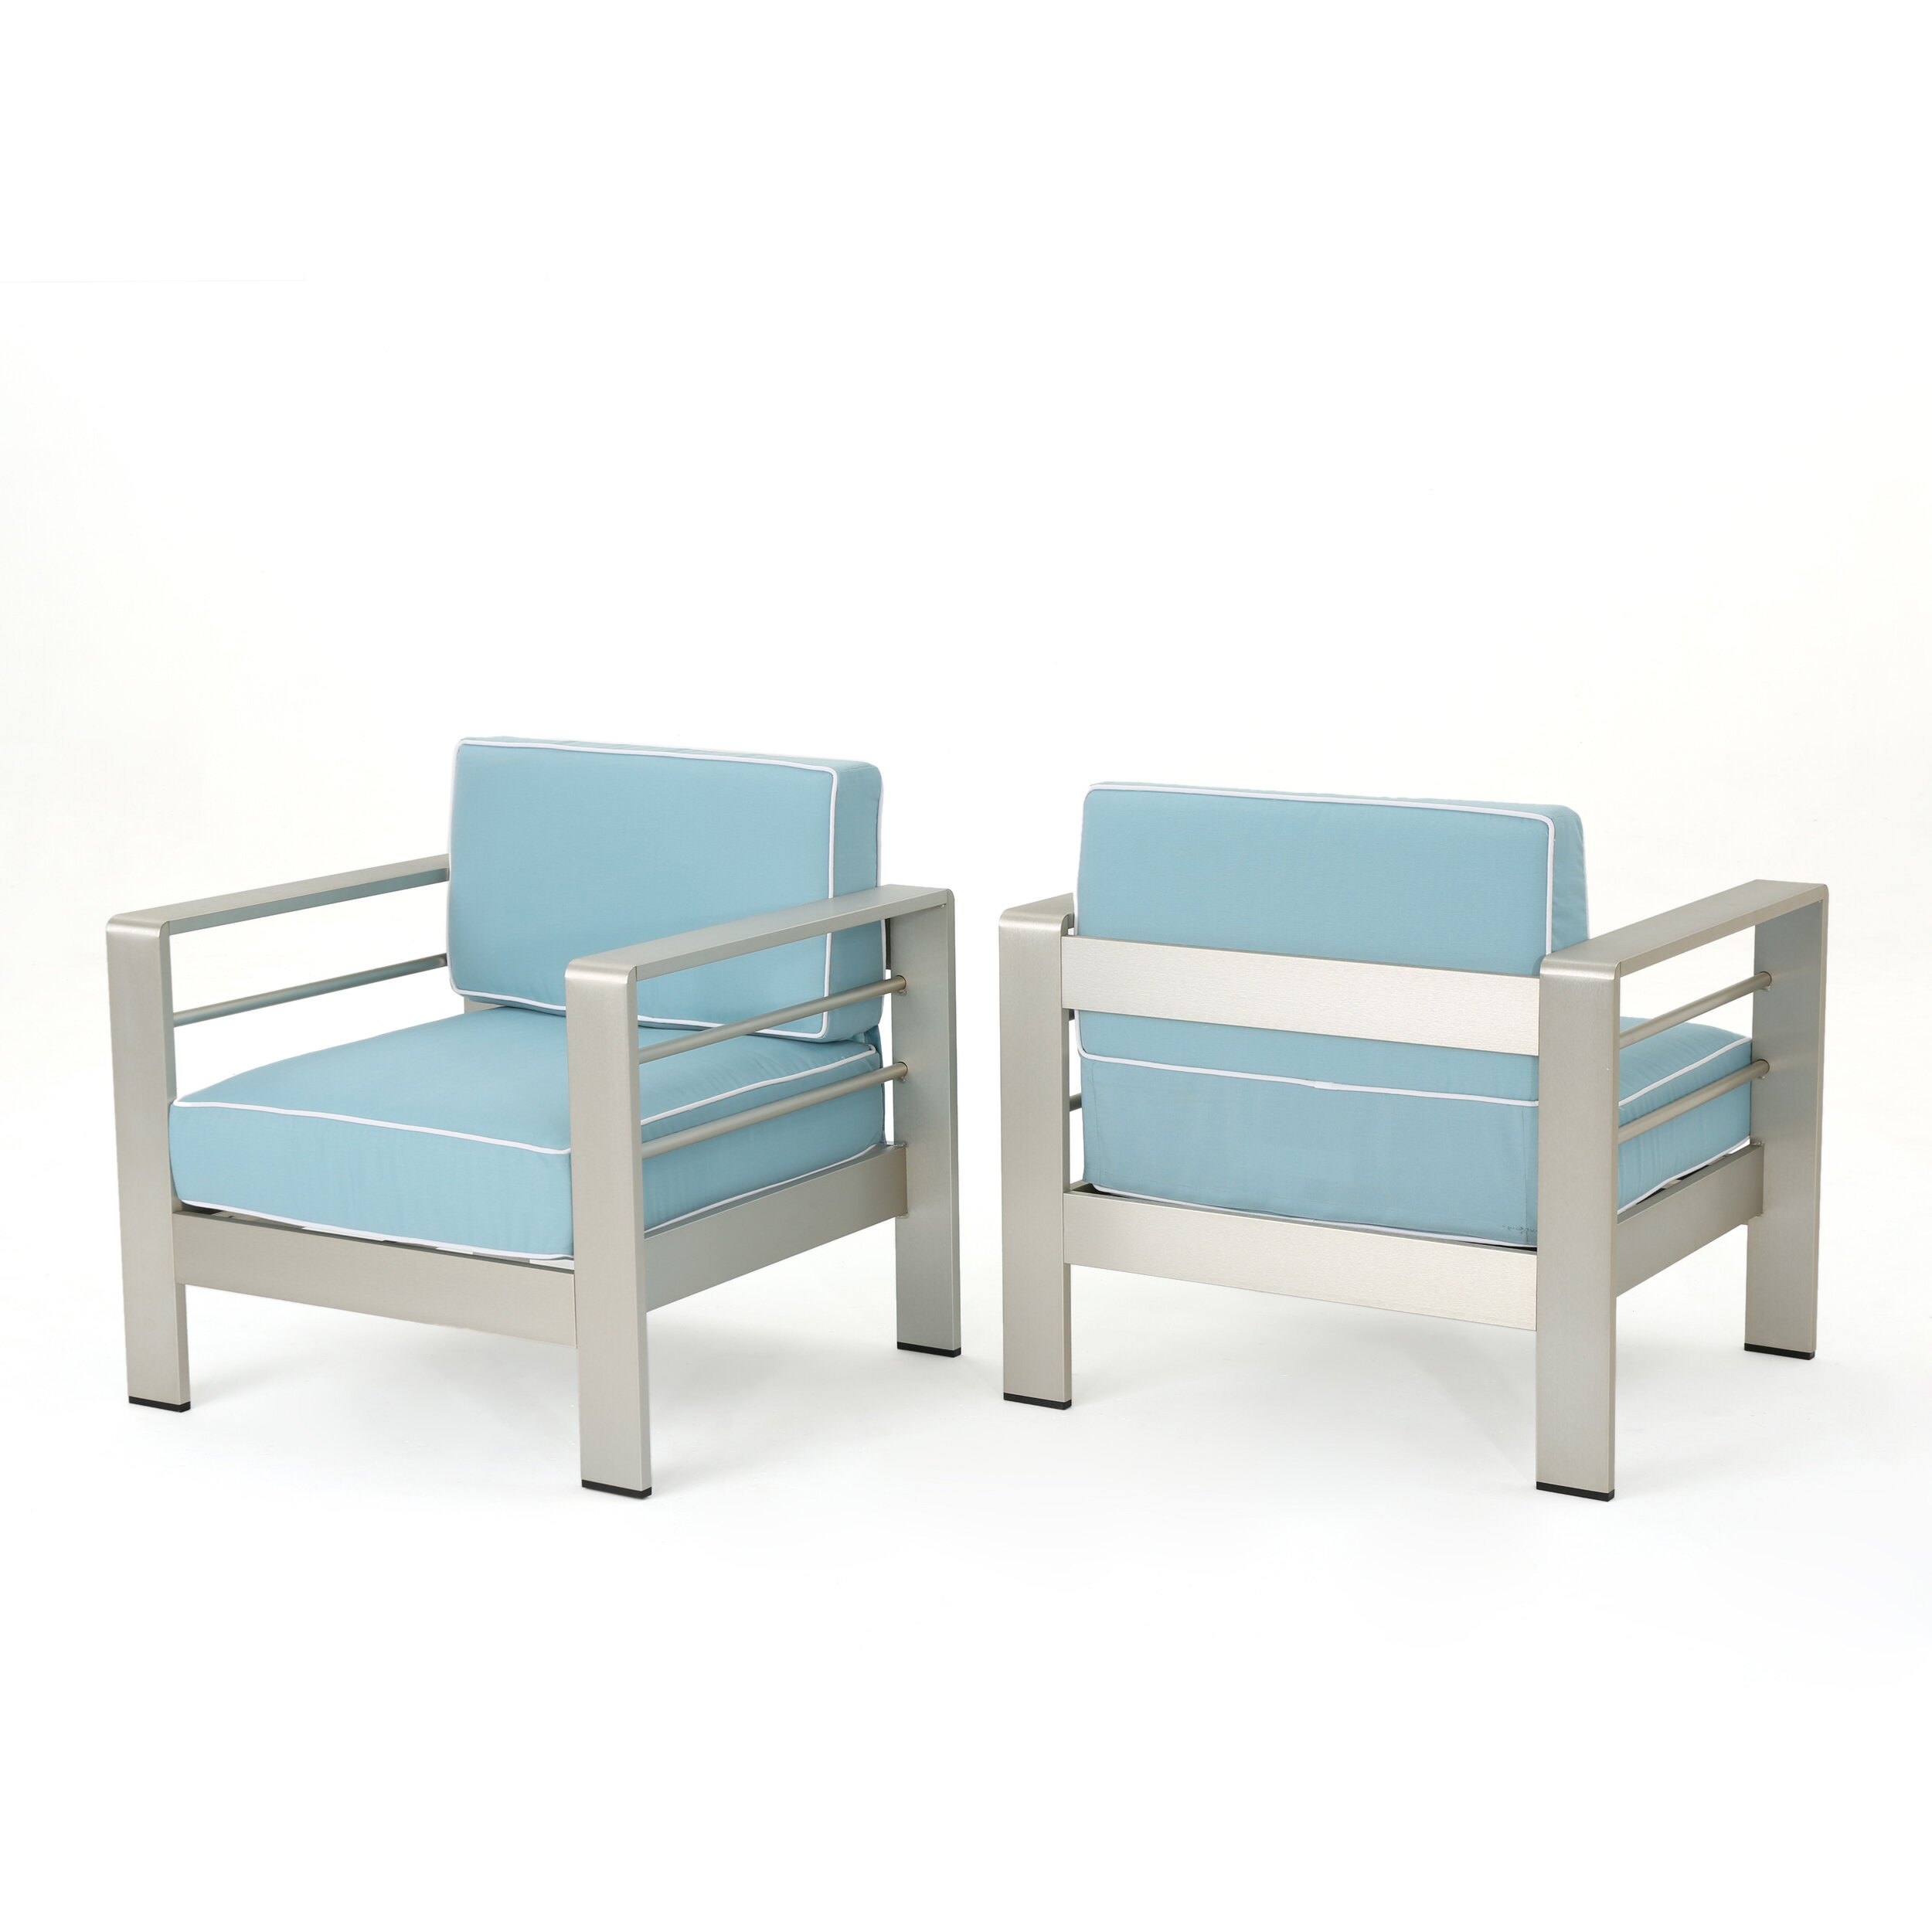 Restoration Hardware Kijiji: Outdoor Table And Chairs Dublin